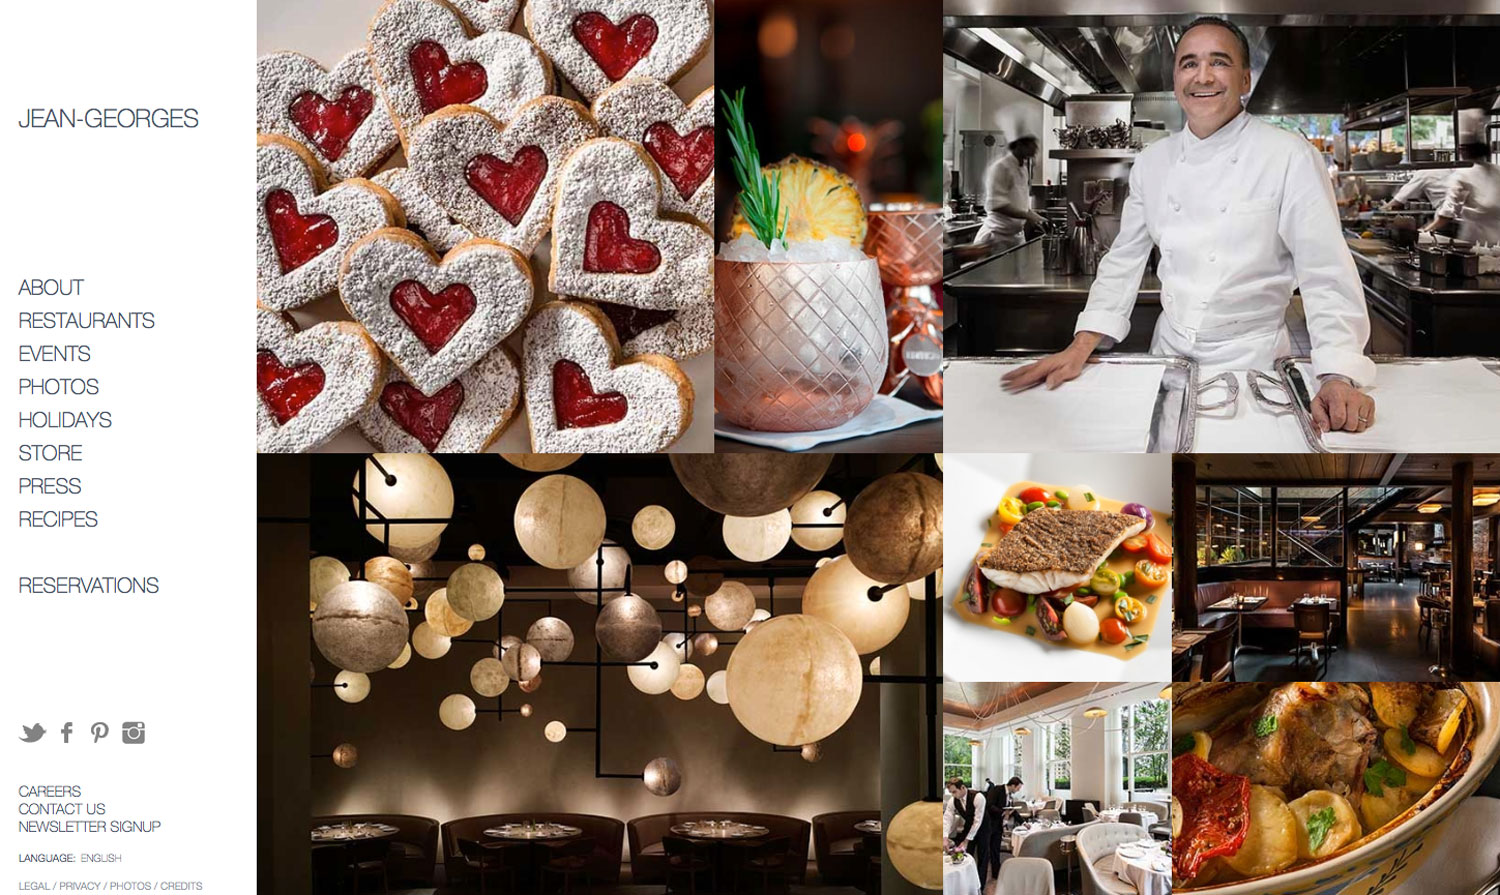 JeanGeorges Website